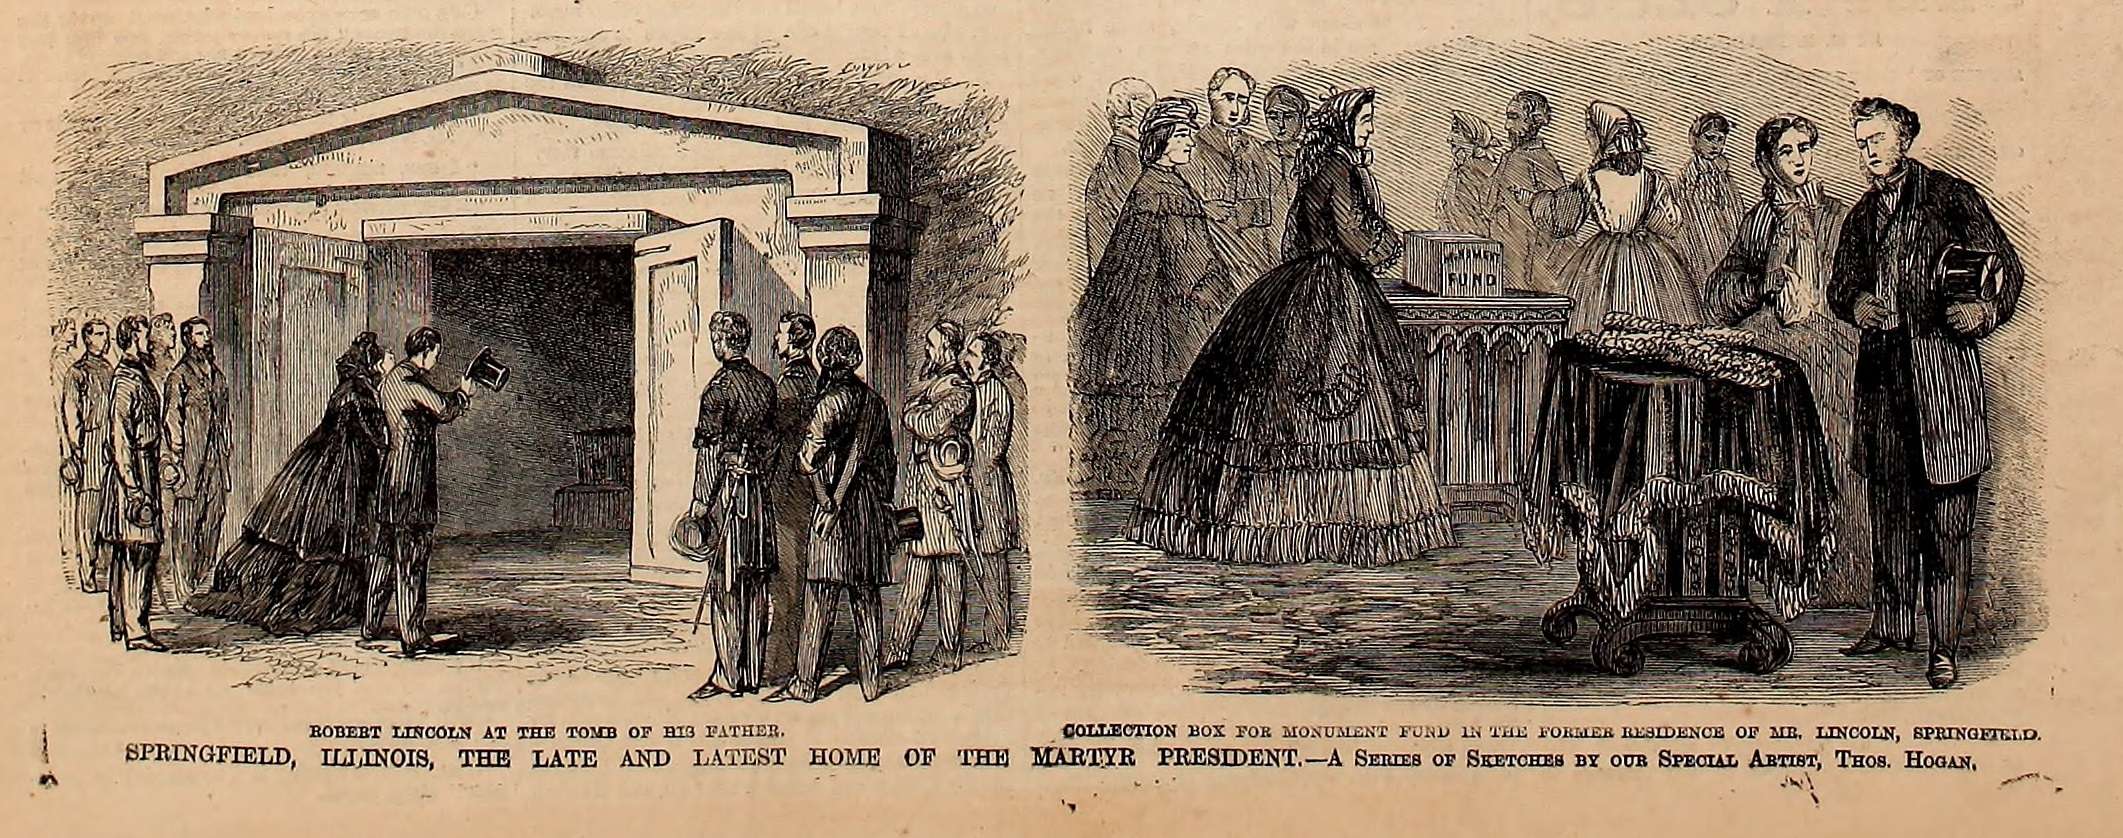 Mourners at Abraham Lincoln's Funeral in Springfield, IL - Frank Leslie's Illustrated Newspaper Drawing